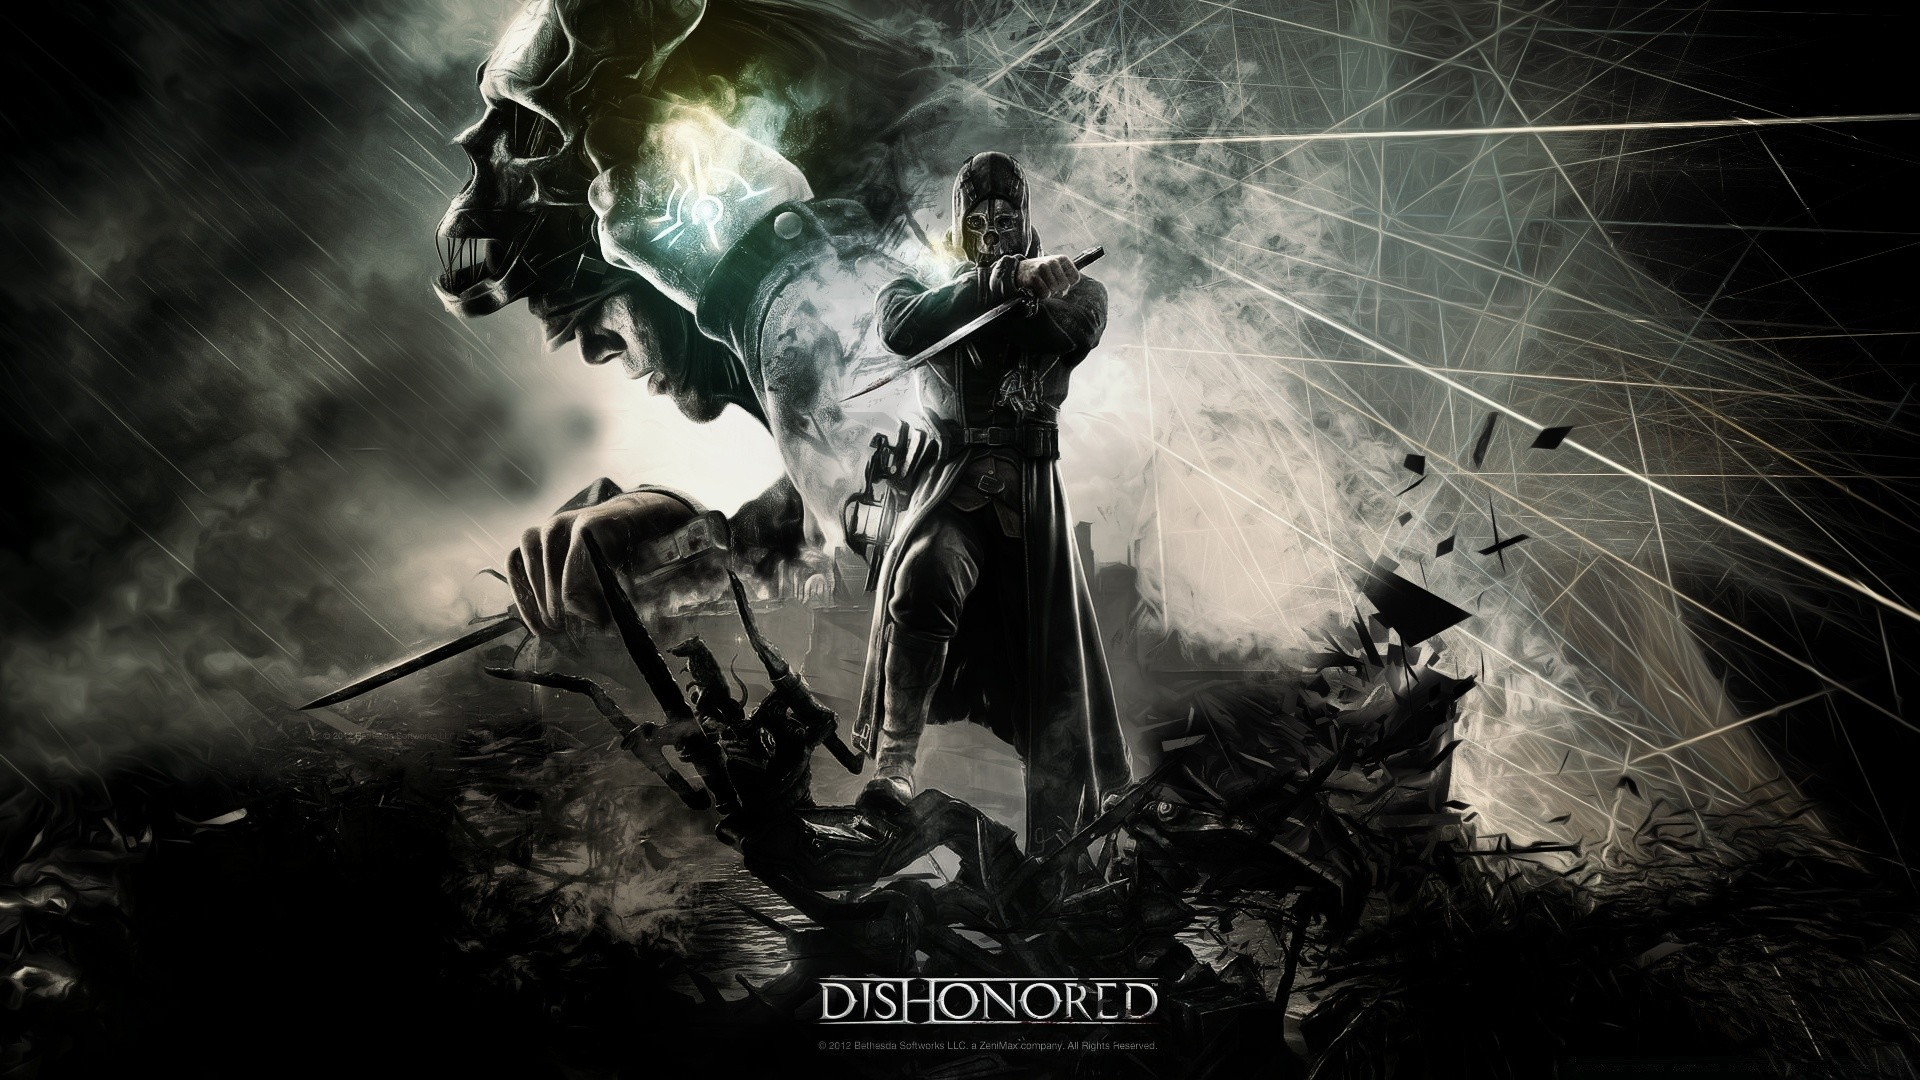 dishonored video game. desktop wallpapers for free.